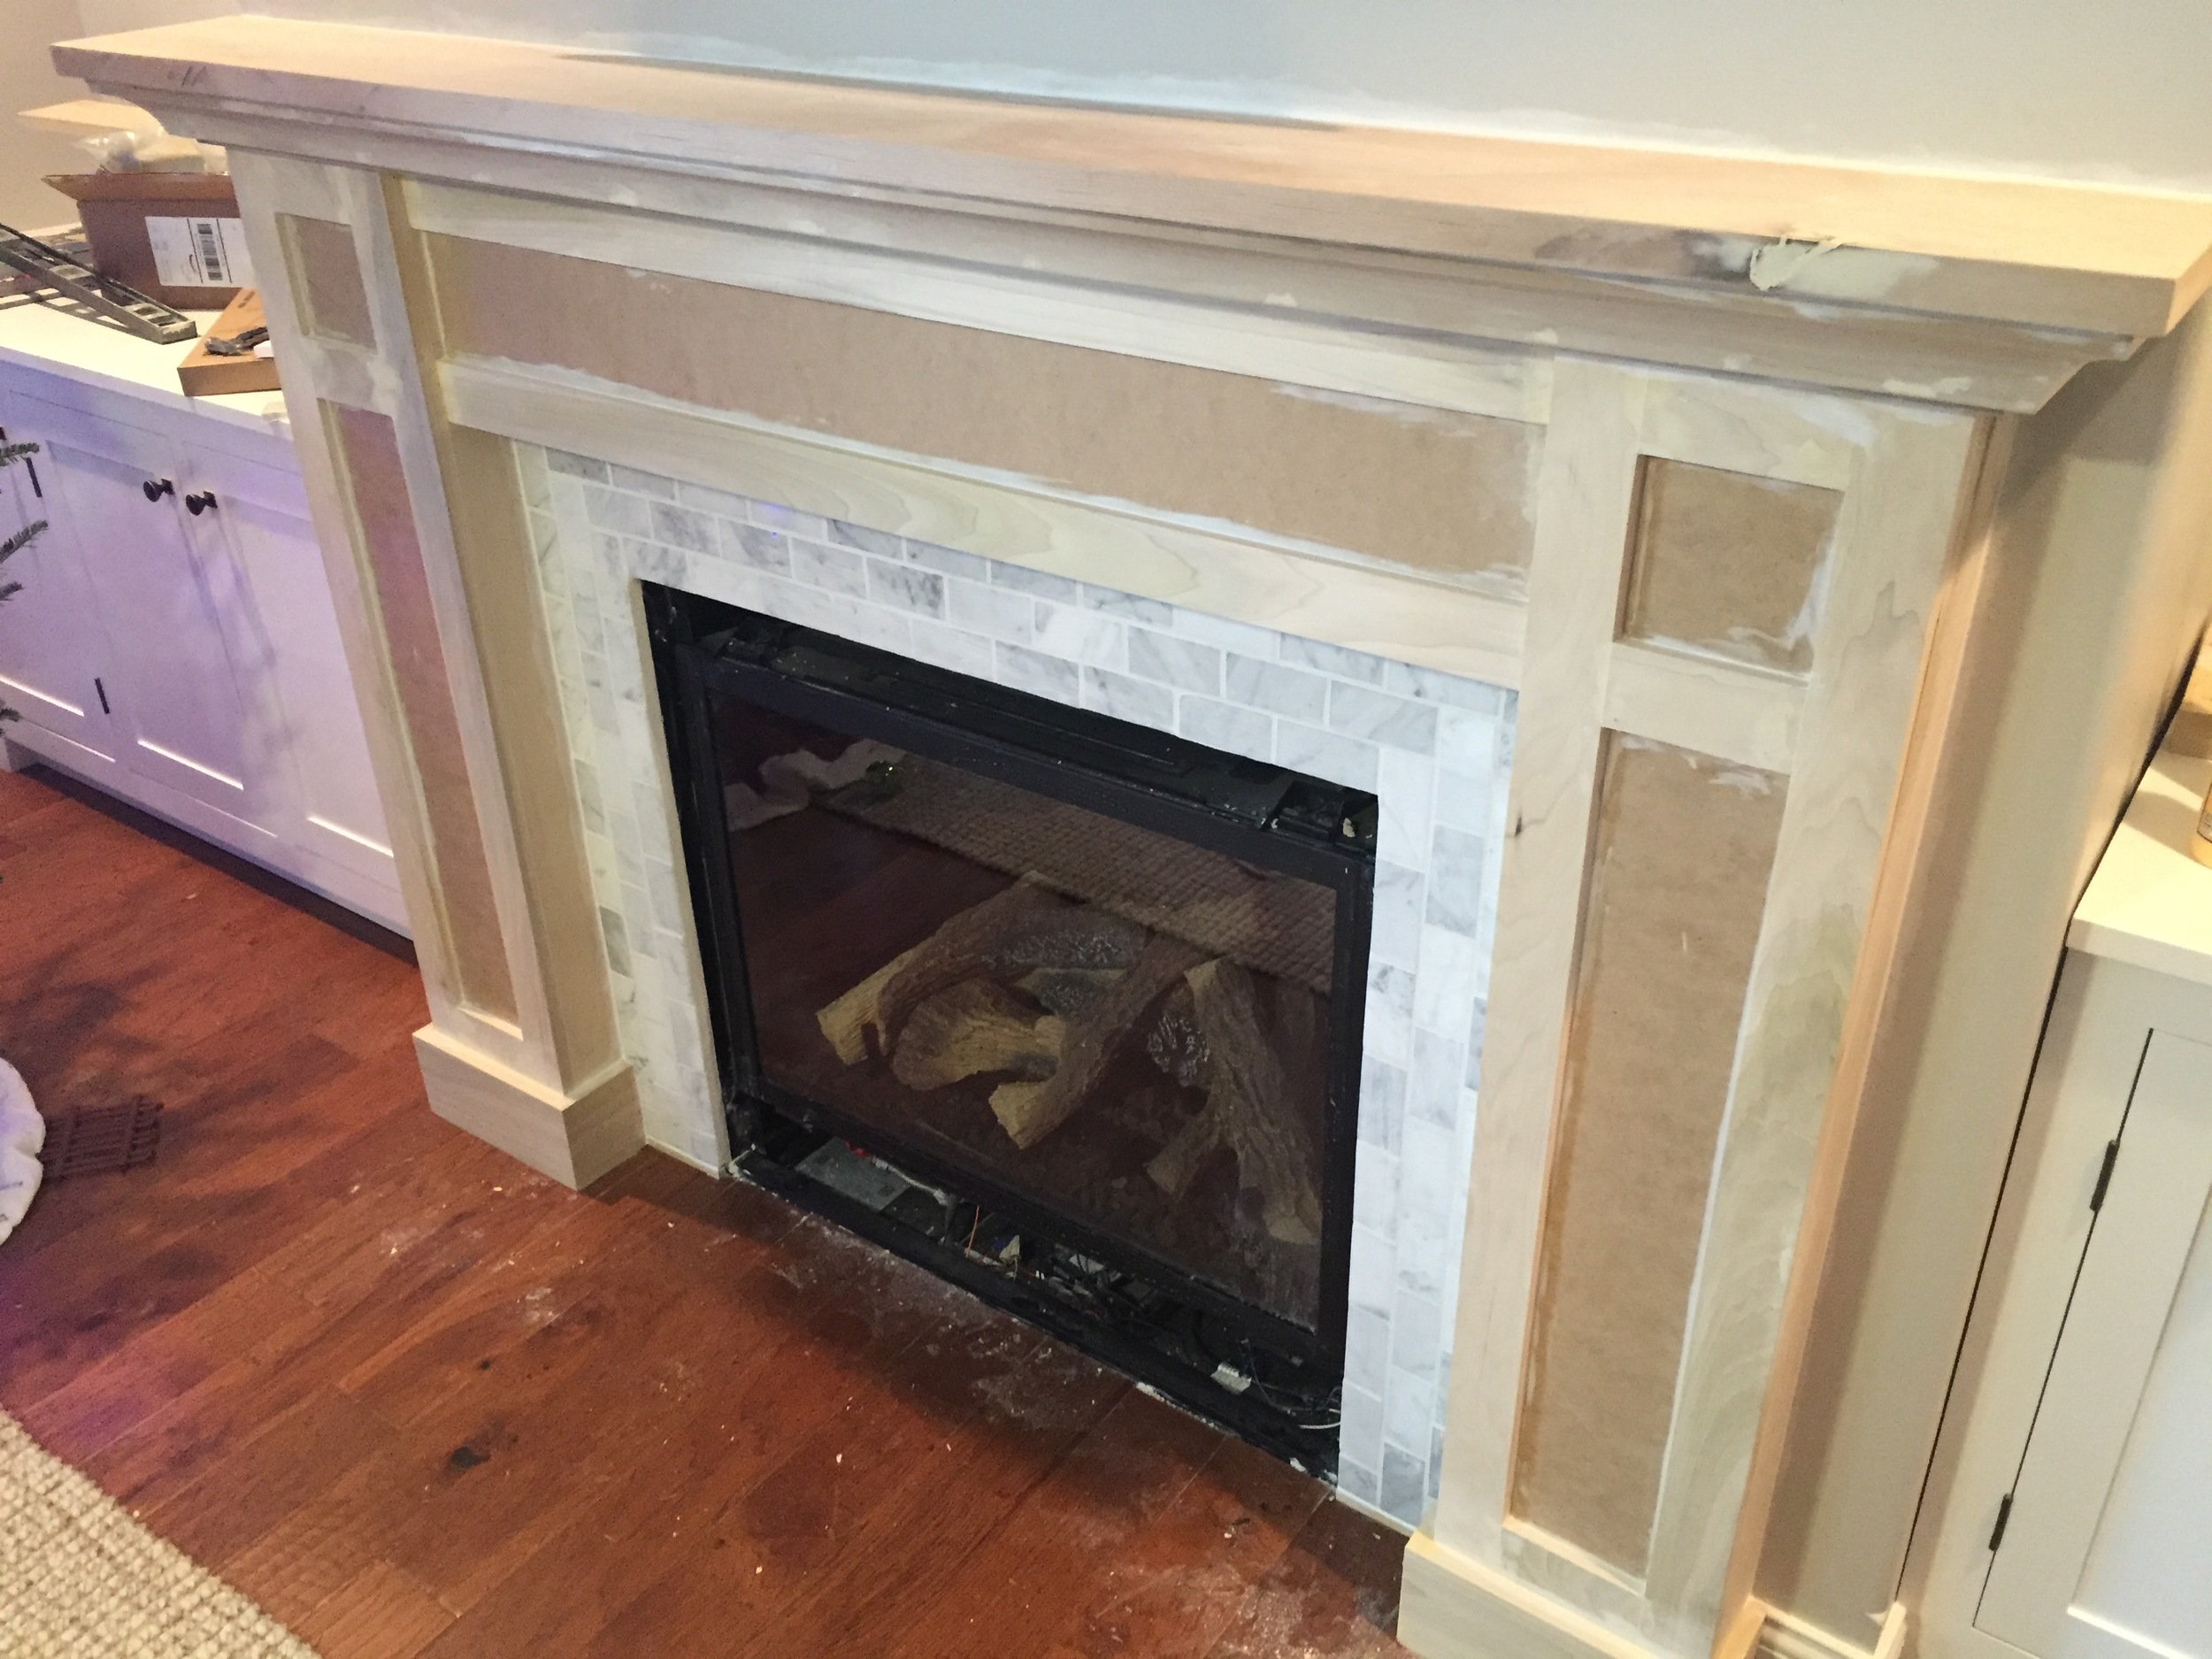 How To Build A Shaker Fireplace Mantel And Surround Woodworking Philip Miller Furniture